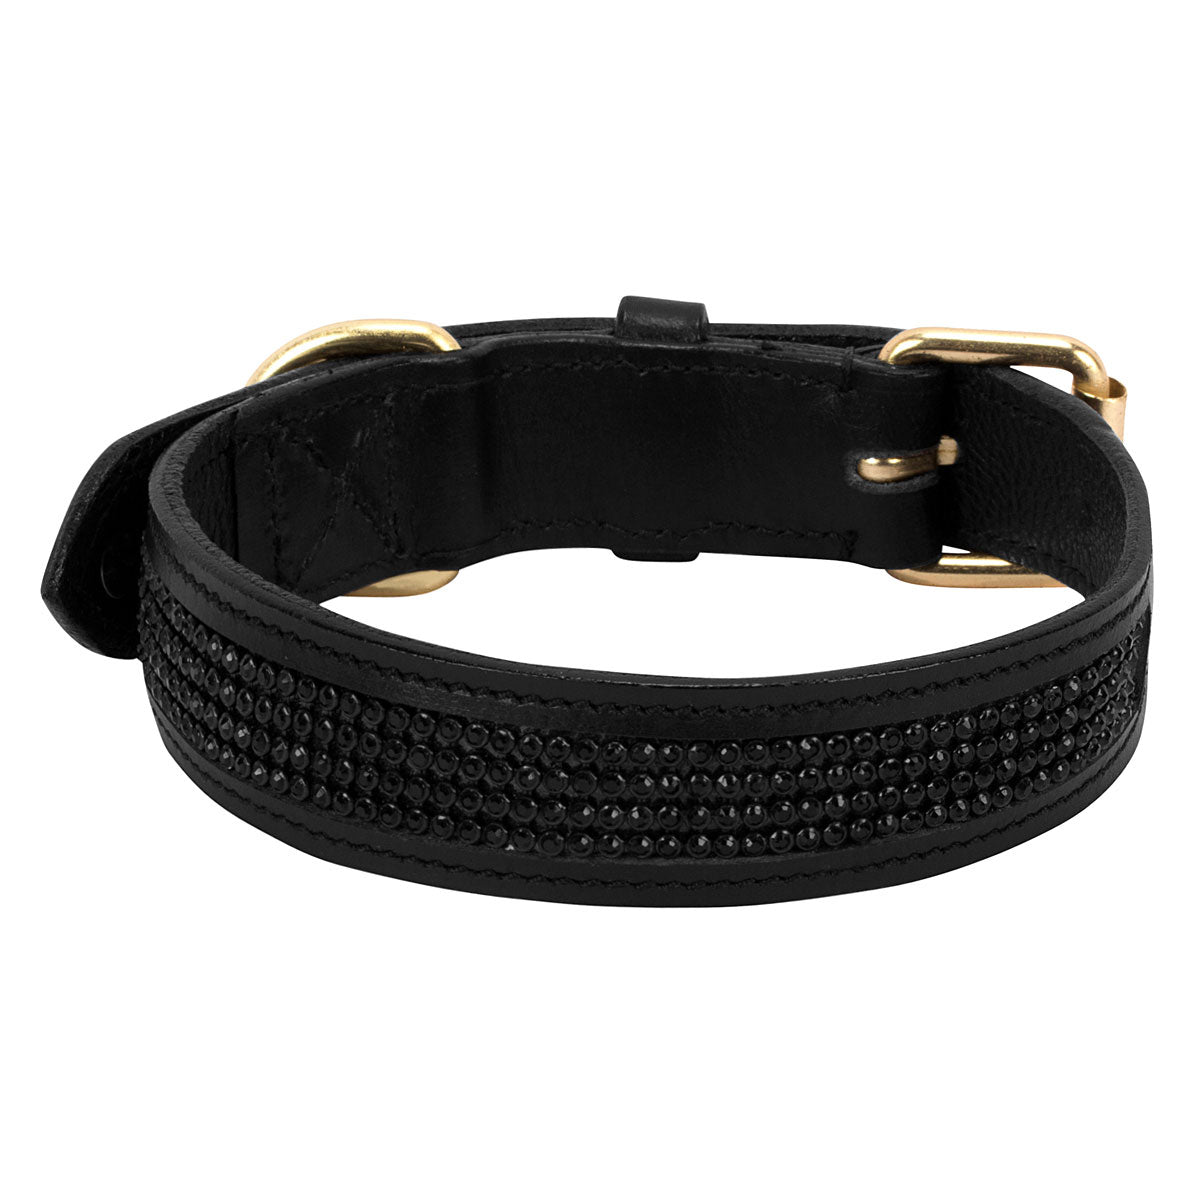 Halo Bling 4 Row Dog Collar_1488